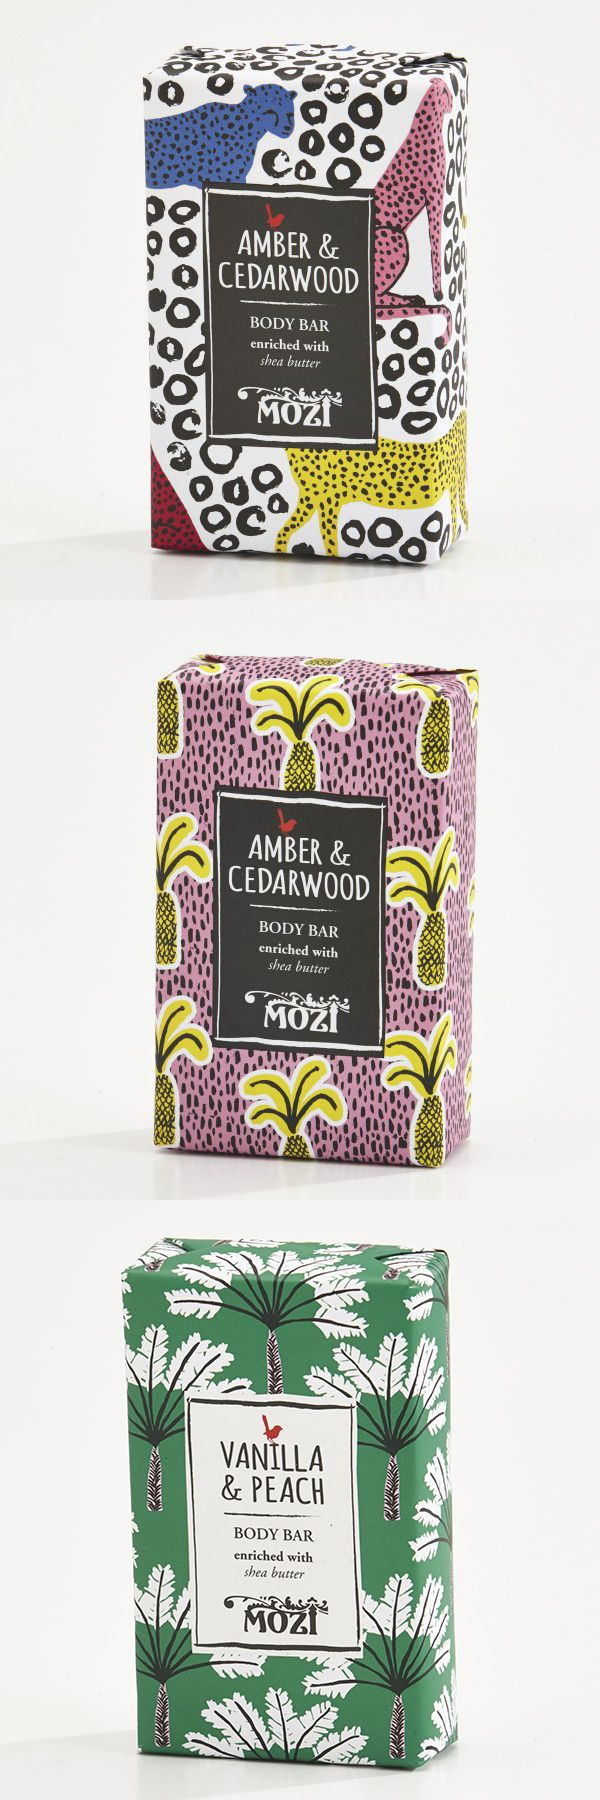 Inspired by … Out of Africa collection from Australian Lifestyle brand Mozi. Branding Packaging – the looseness and energy these patterns bring to the brand. Cheetahs, Palm Trees, and Pineapple drawings give this sense of ease and relaxation that the brand once to convey. A small detail to appreciate is also the use of this serif typeface to contrast the looseness of the patterns.